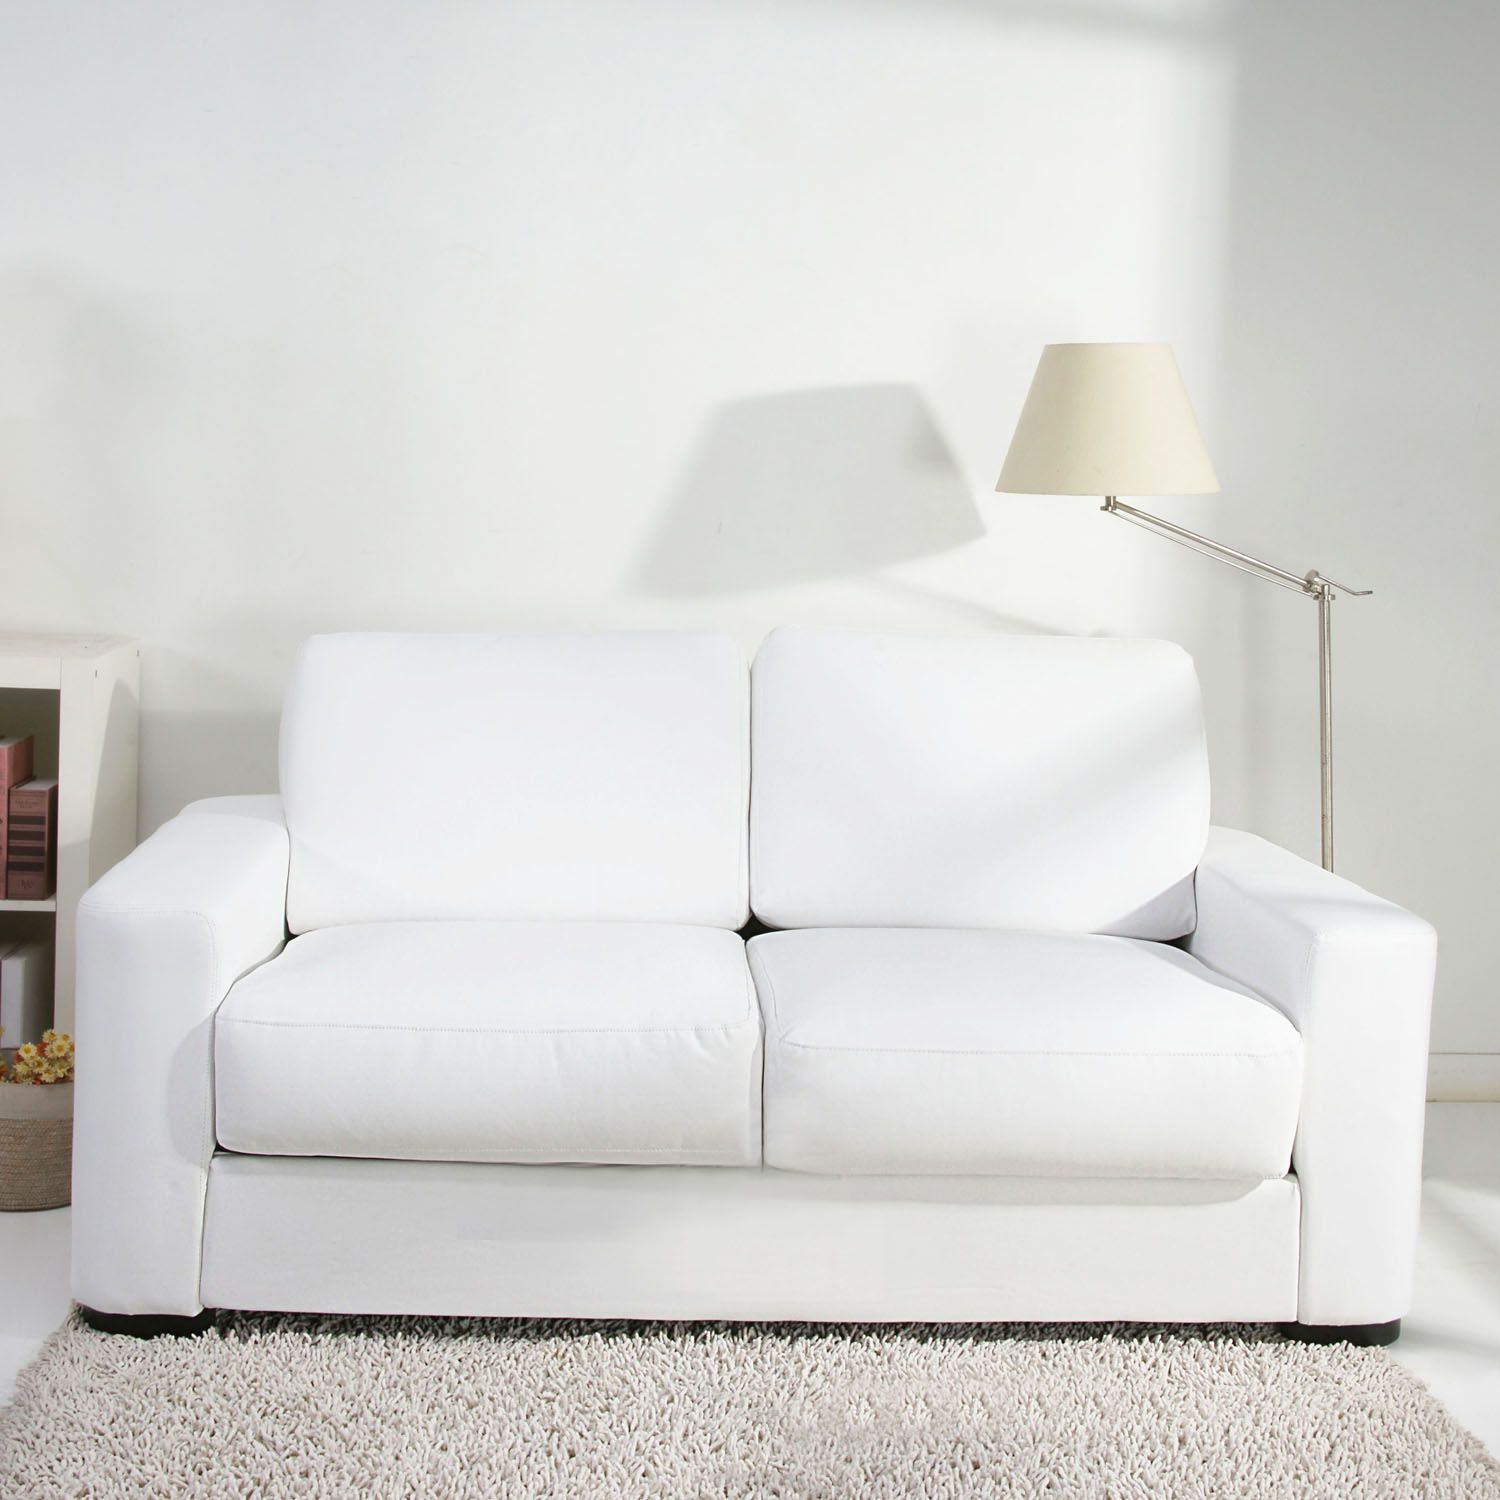 6 easy steps on cleaning your white sofa cleaning services white leather sofa bed white. Black Bedroom Furniture Sets. Home Design Ideas